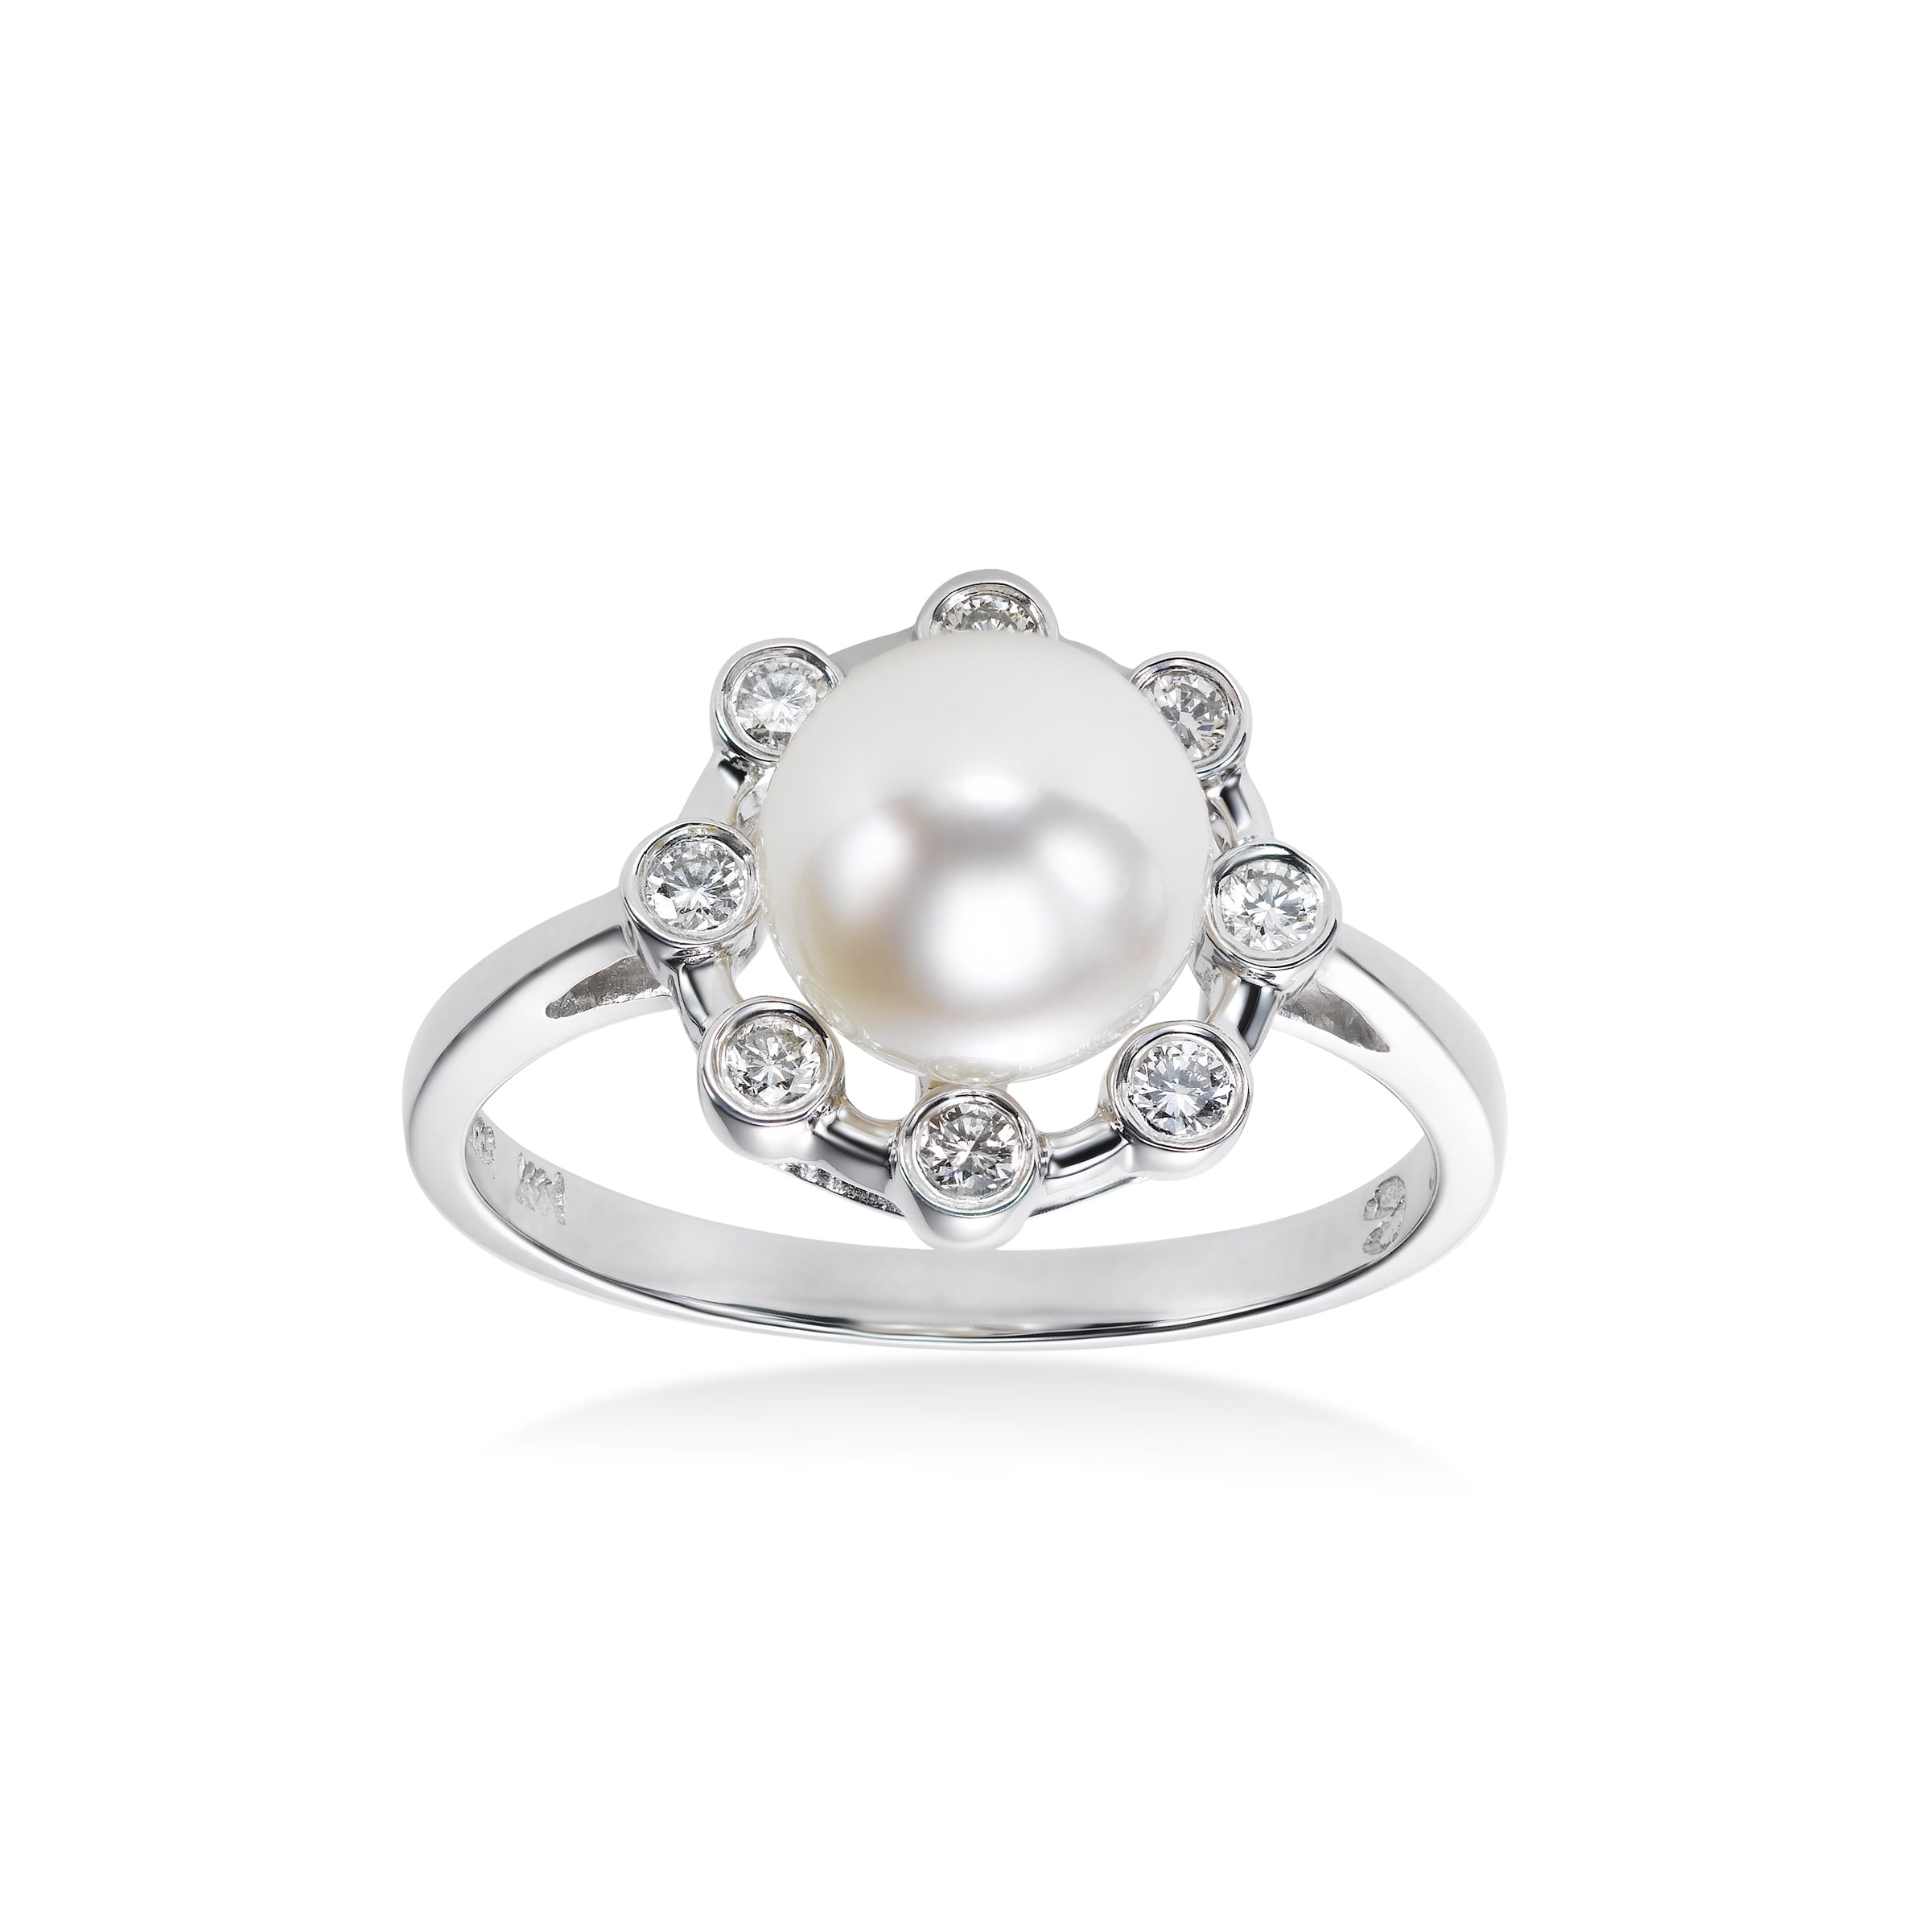 Akoya Cultured Pearl and Diamond Ring, 14K White Gold